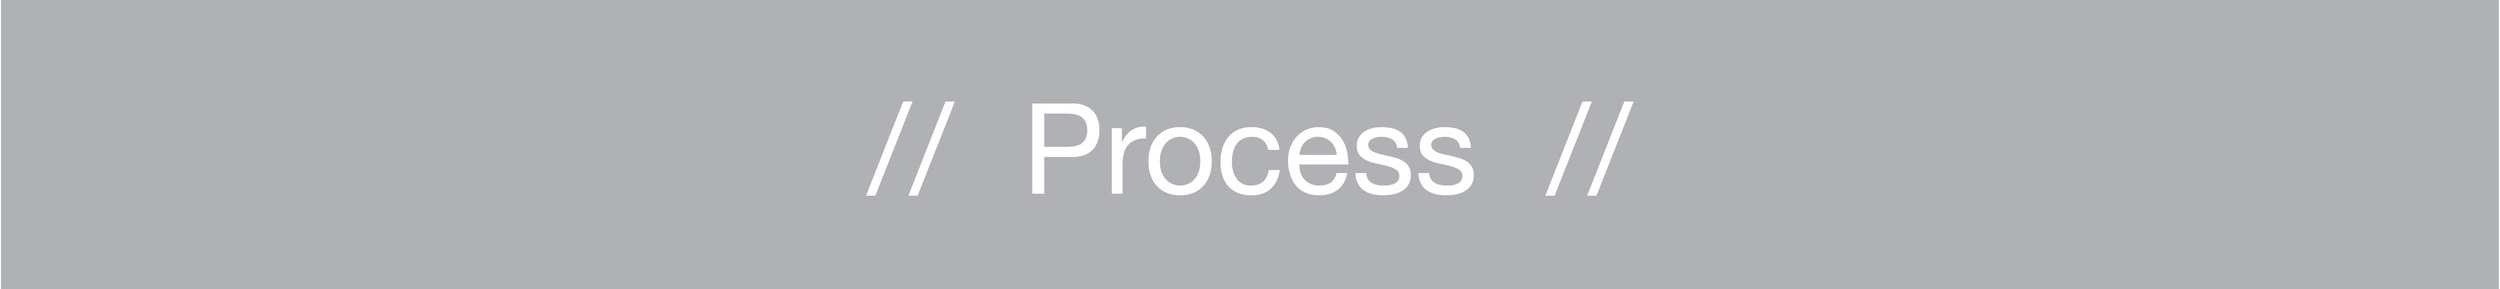 Process label.jpg